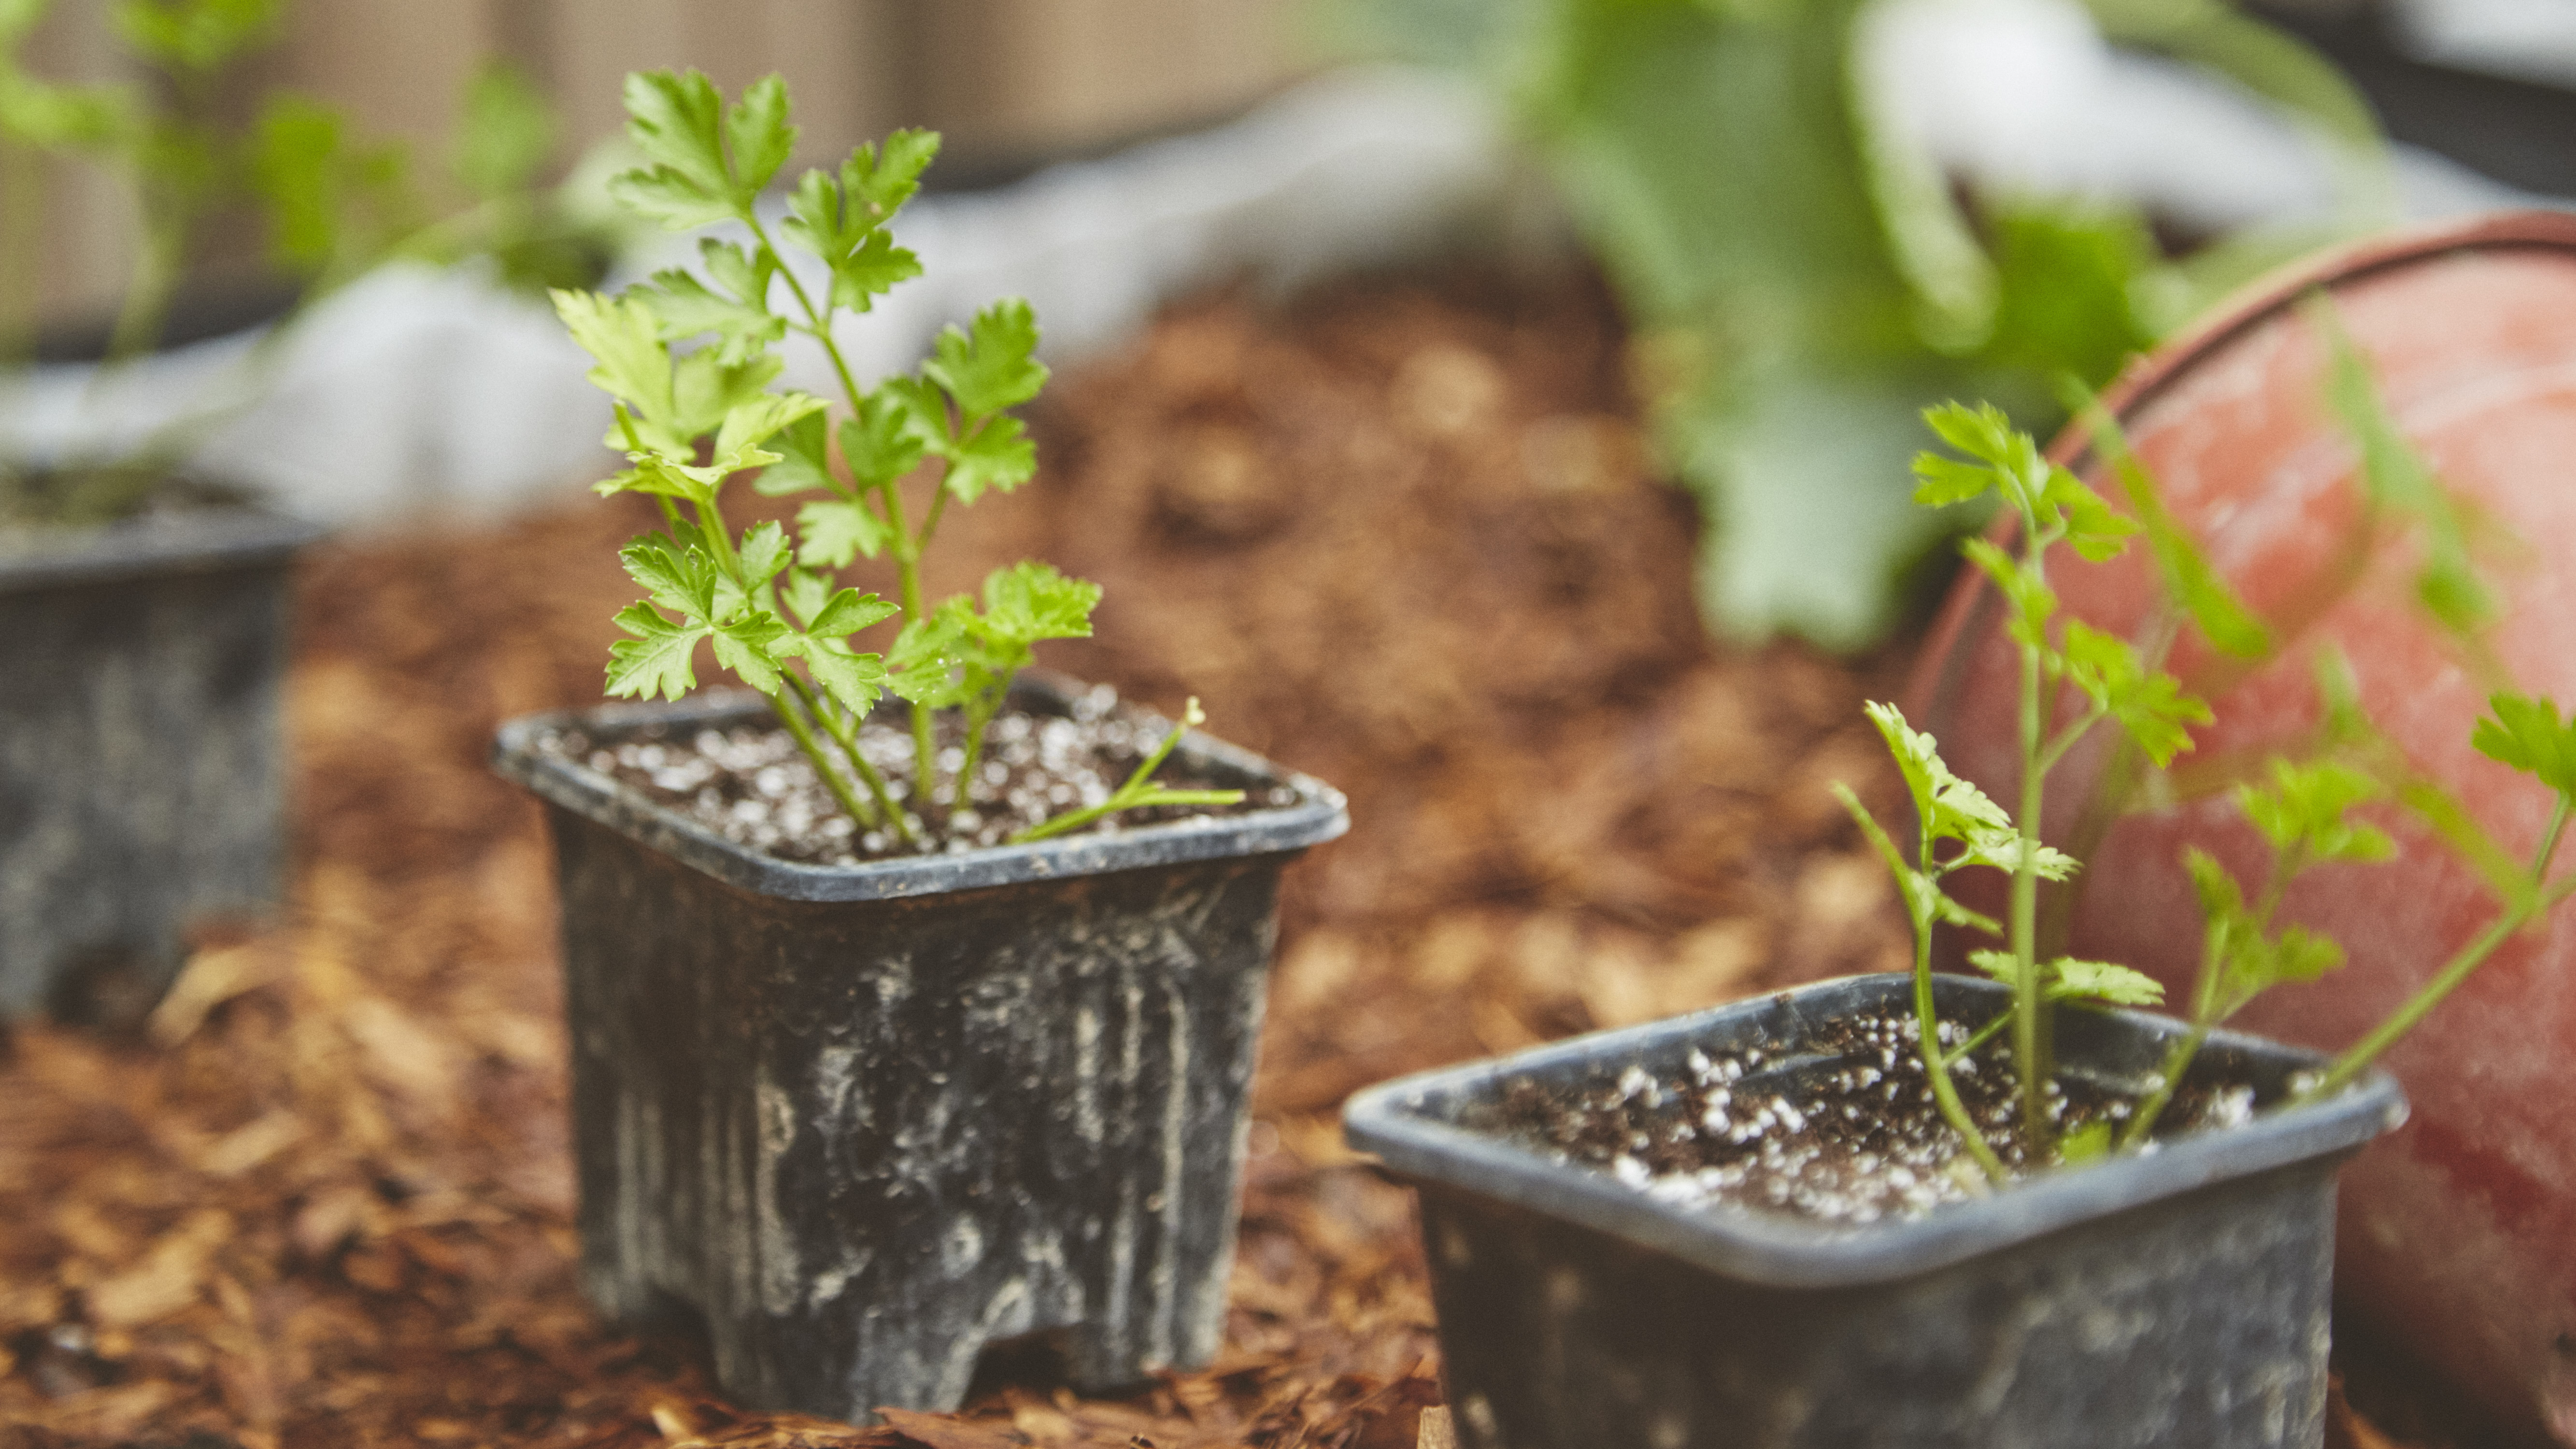 Learn how to grow and take care of your own plants at the Garage Greens garden